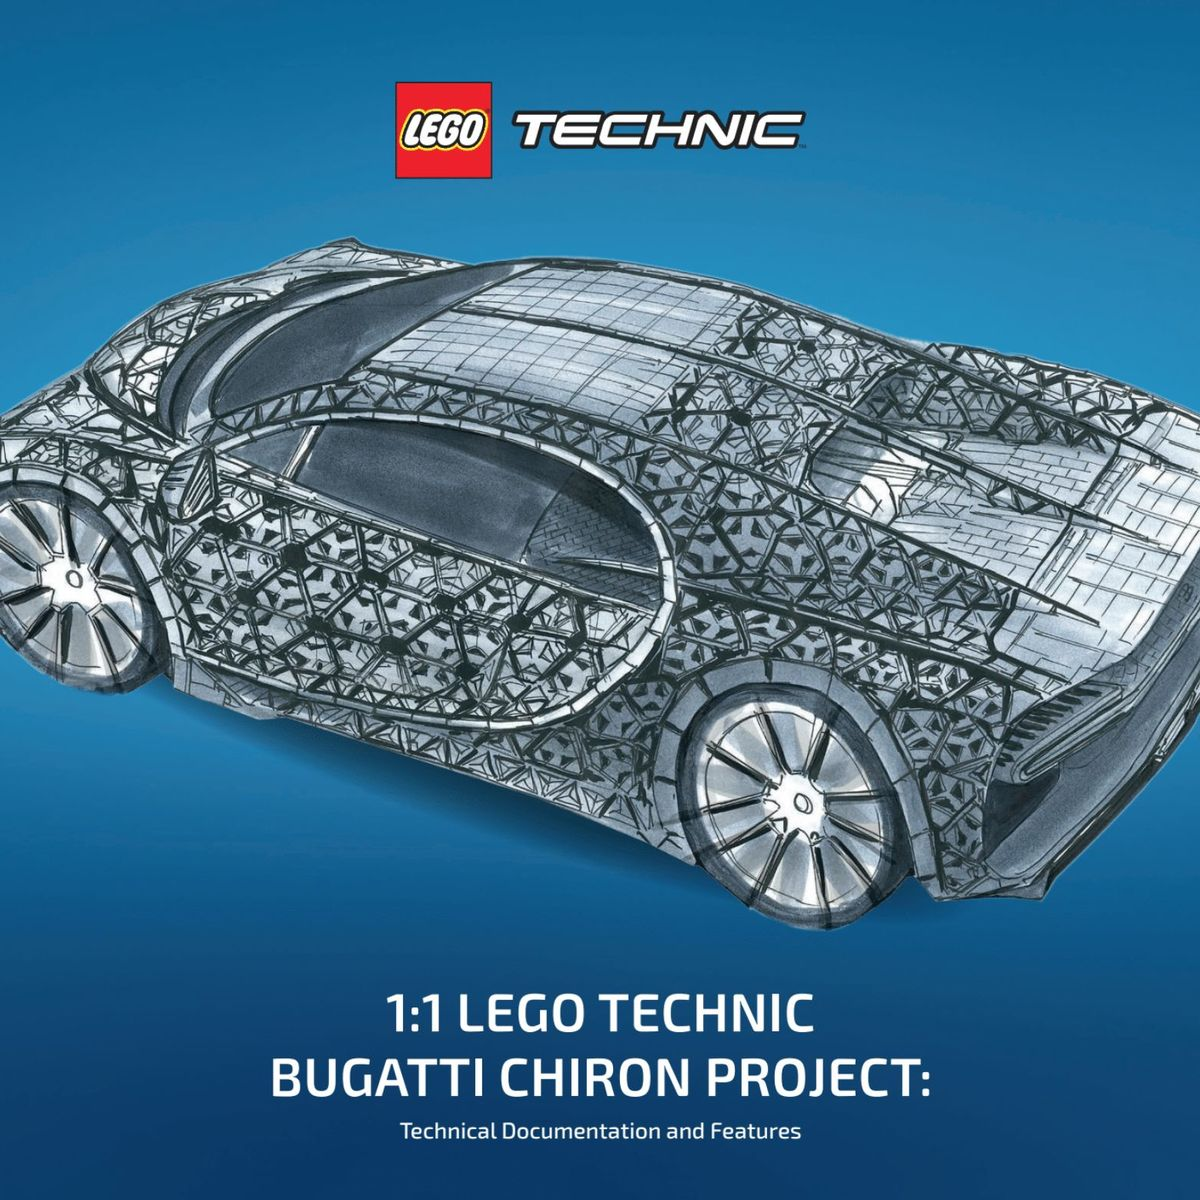 Bugatti Chiron Lego Technic edition: Everything you want to know